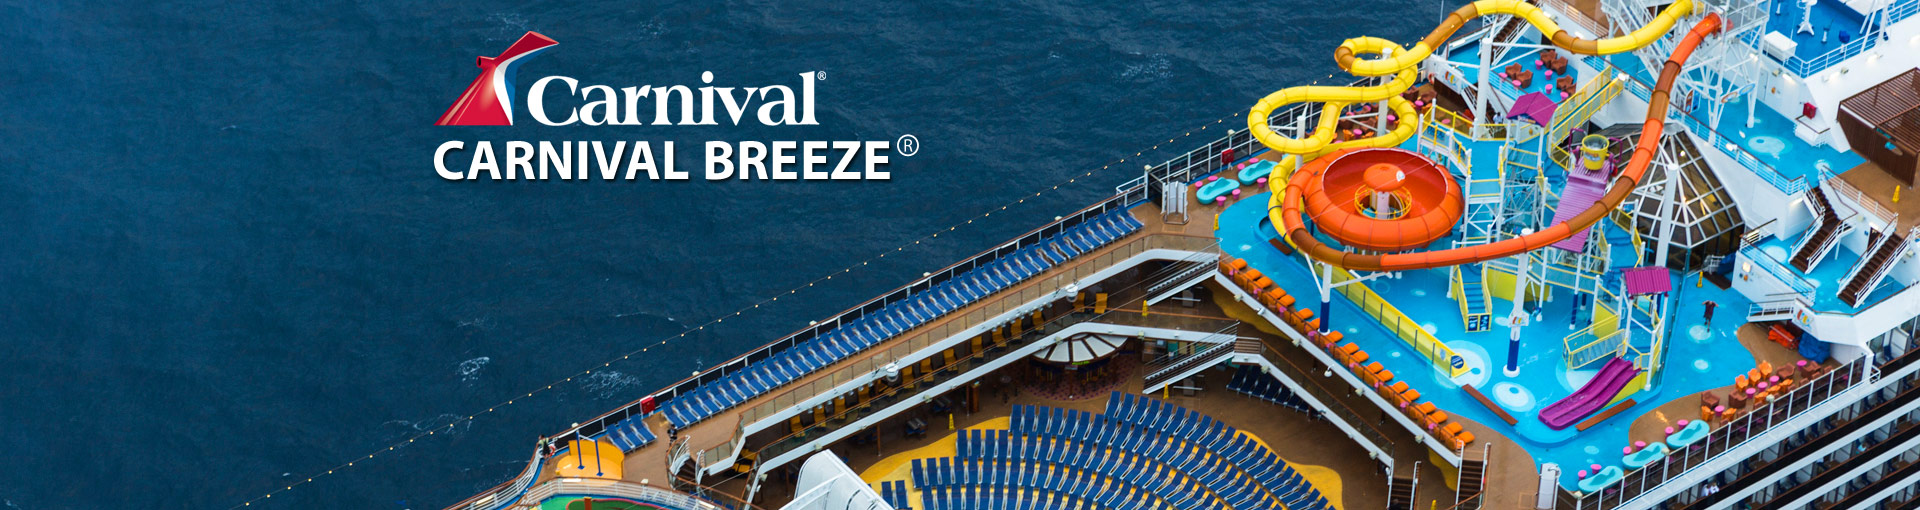 Carnival breeze cruise ship 2017 and 2018 carnival breeze carnival breeze cruise ship baanklon Choice Image